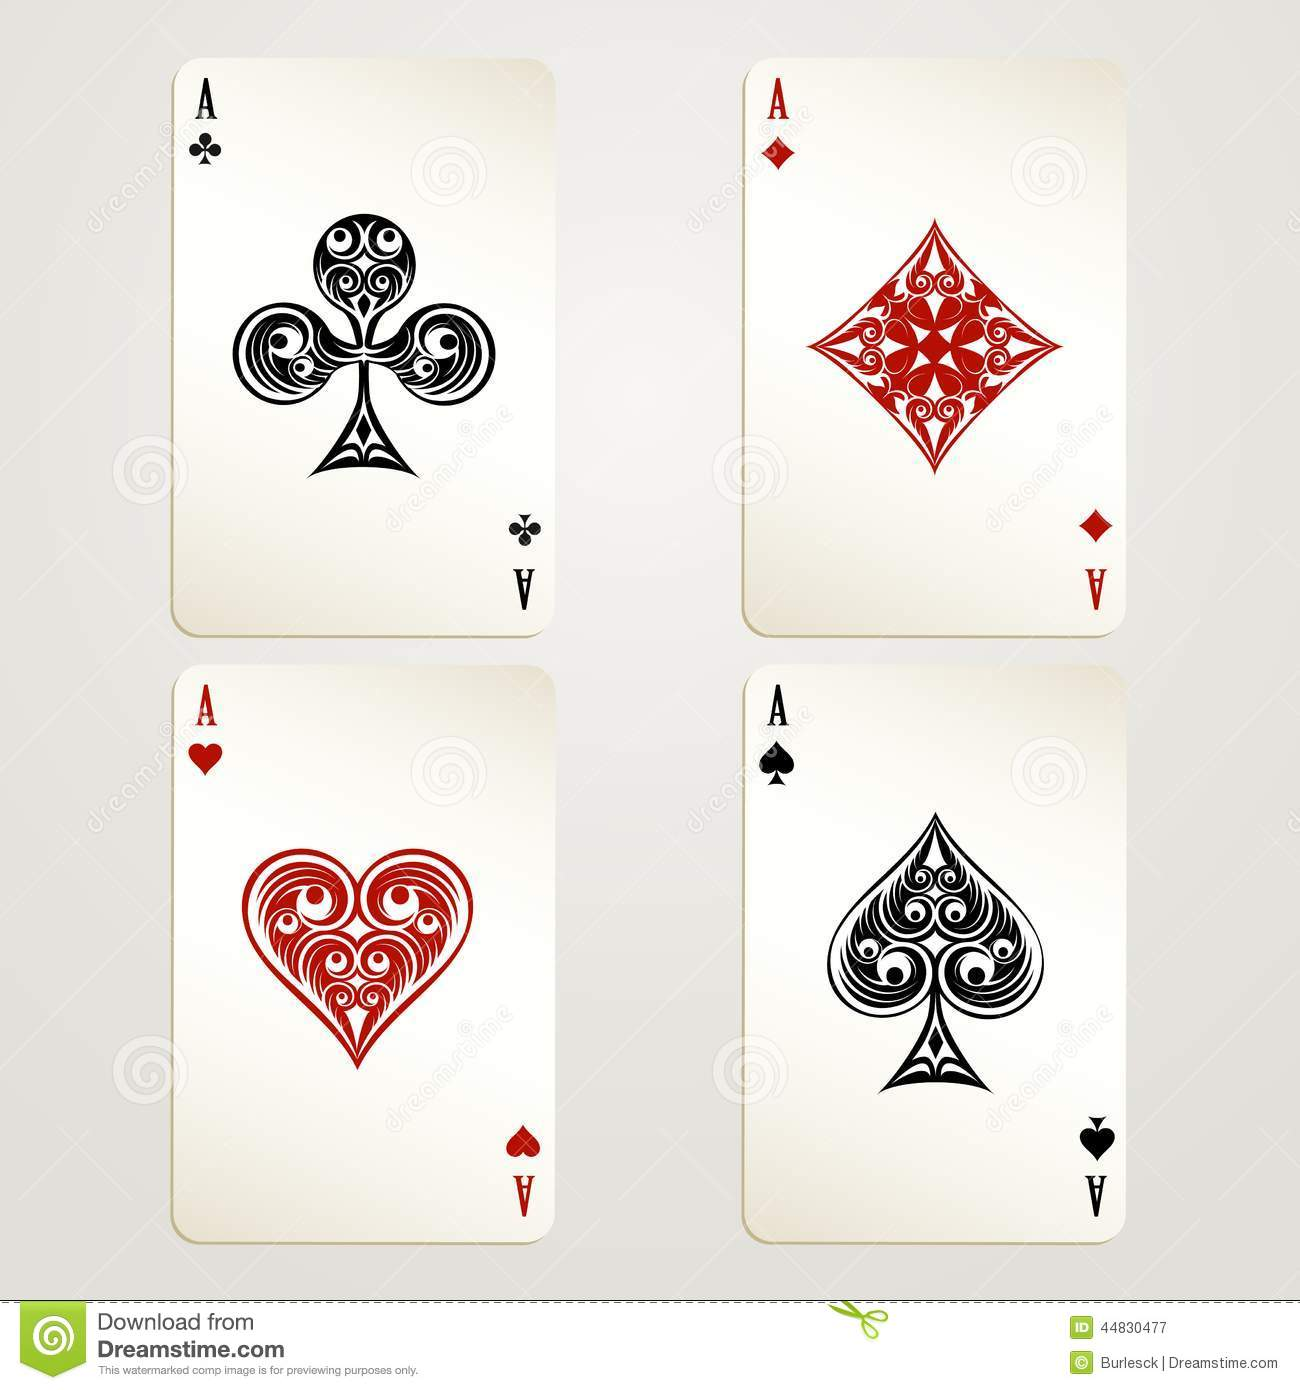 Four aces playing cards vector designs showing each of the four suits ...